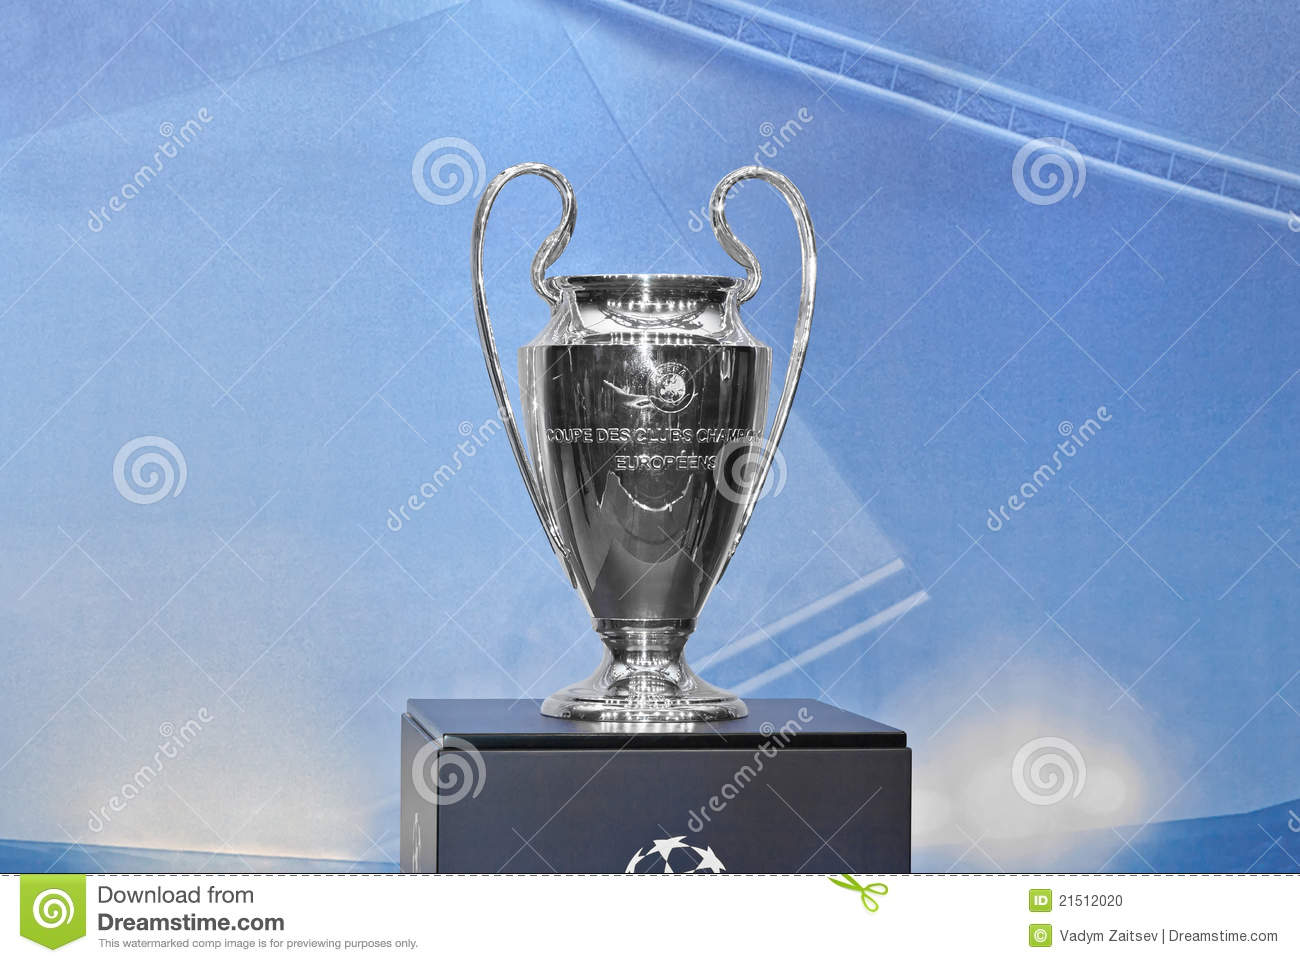 Cup of UEFA Champions League